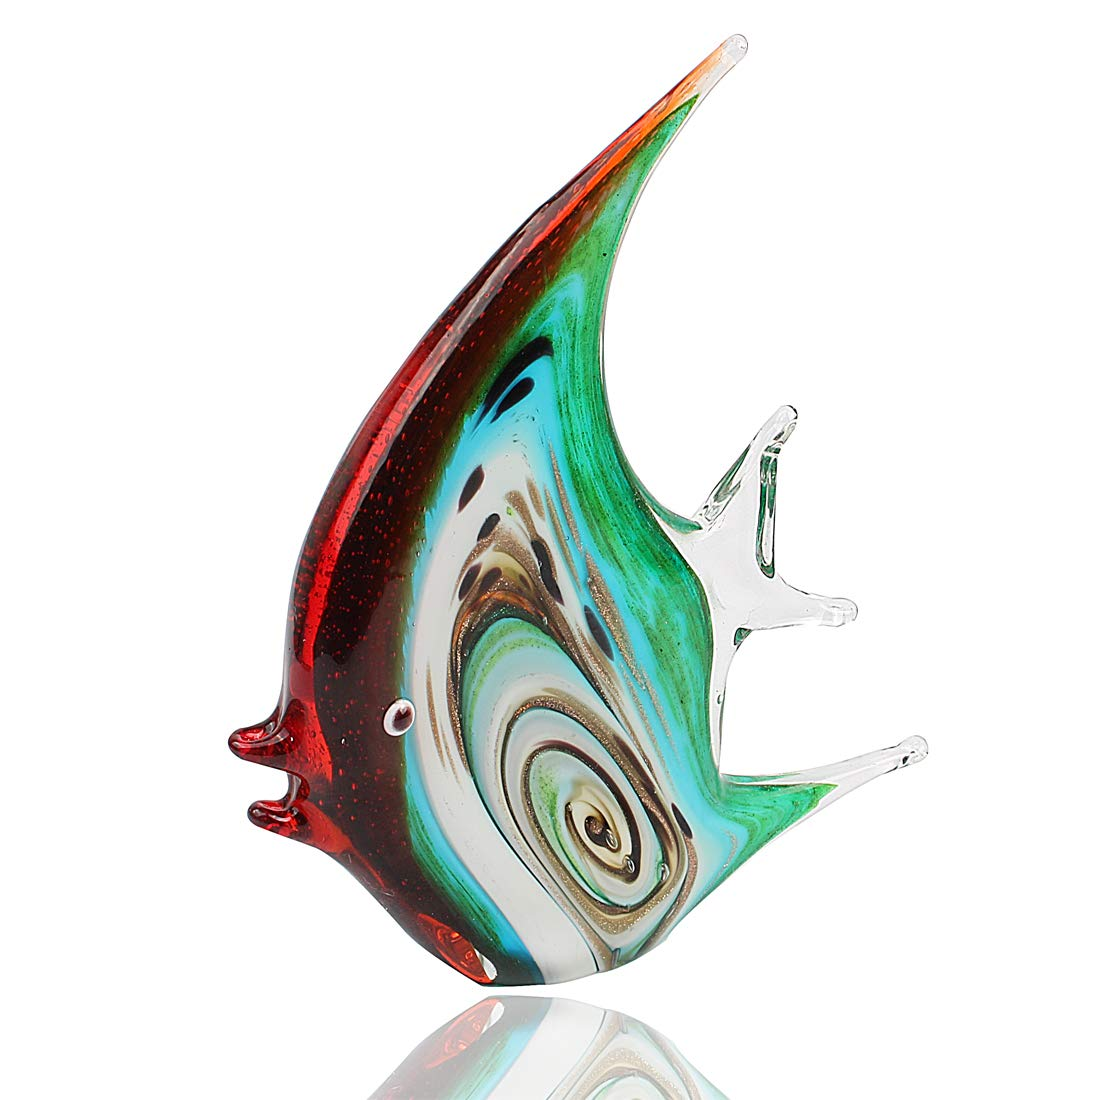 Hophen Tropical Angel Fish Art Glass Blown Handmade Sea Animal Figurine Sculpture Home Decor Collectible Statue Paper Weight Gift Ornament Big 2